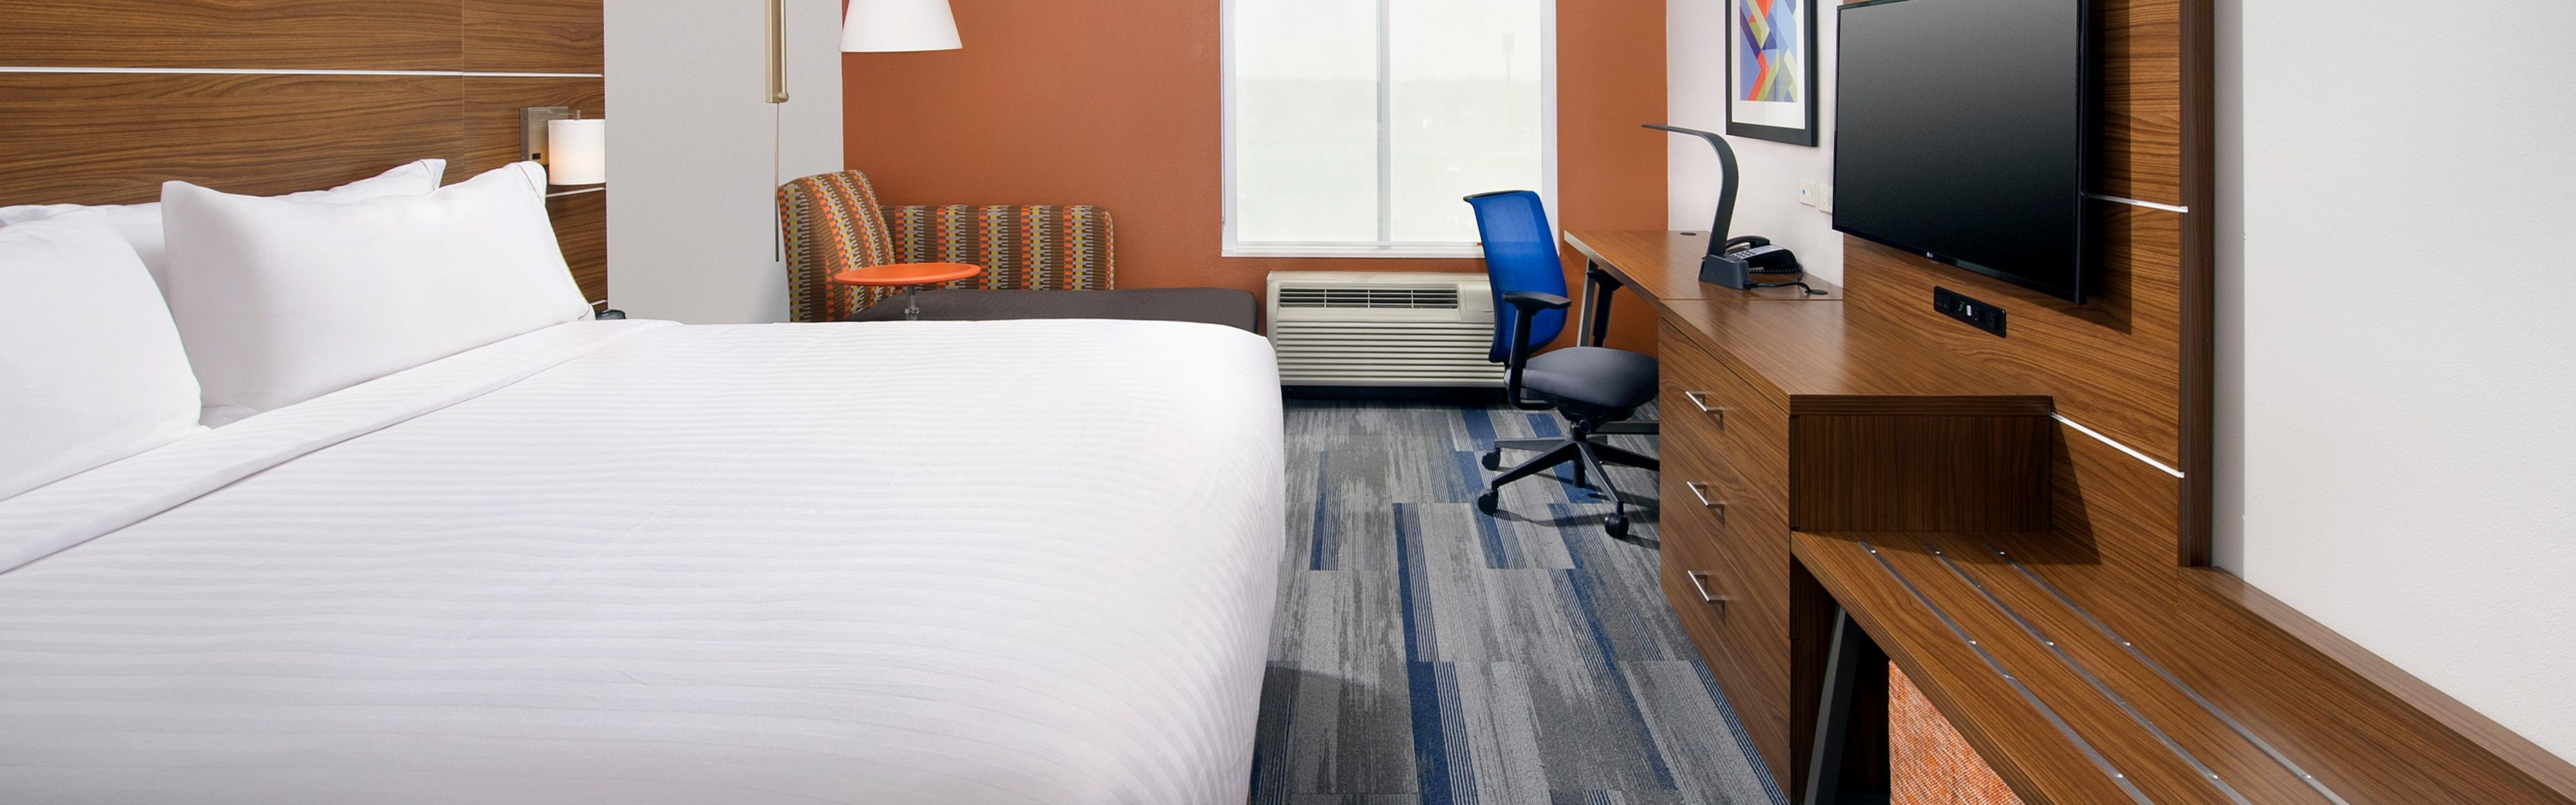 Holiday Inn Express & Suites New Braunfels image 1